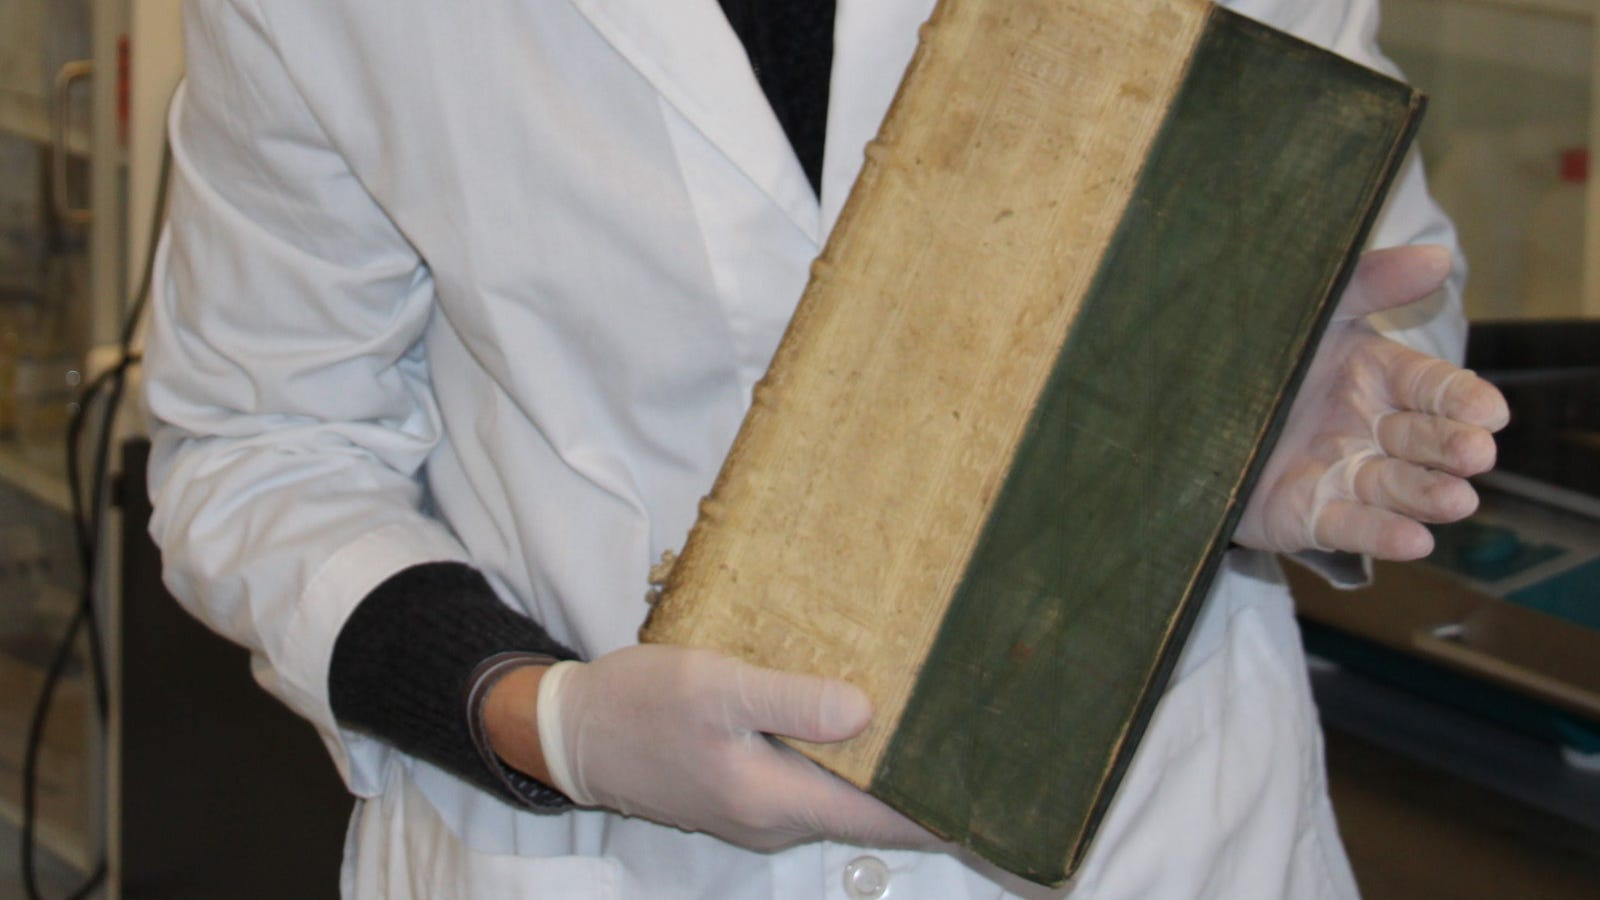 Poisonous Books Discovered in Danish University Library